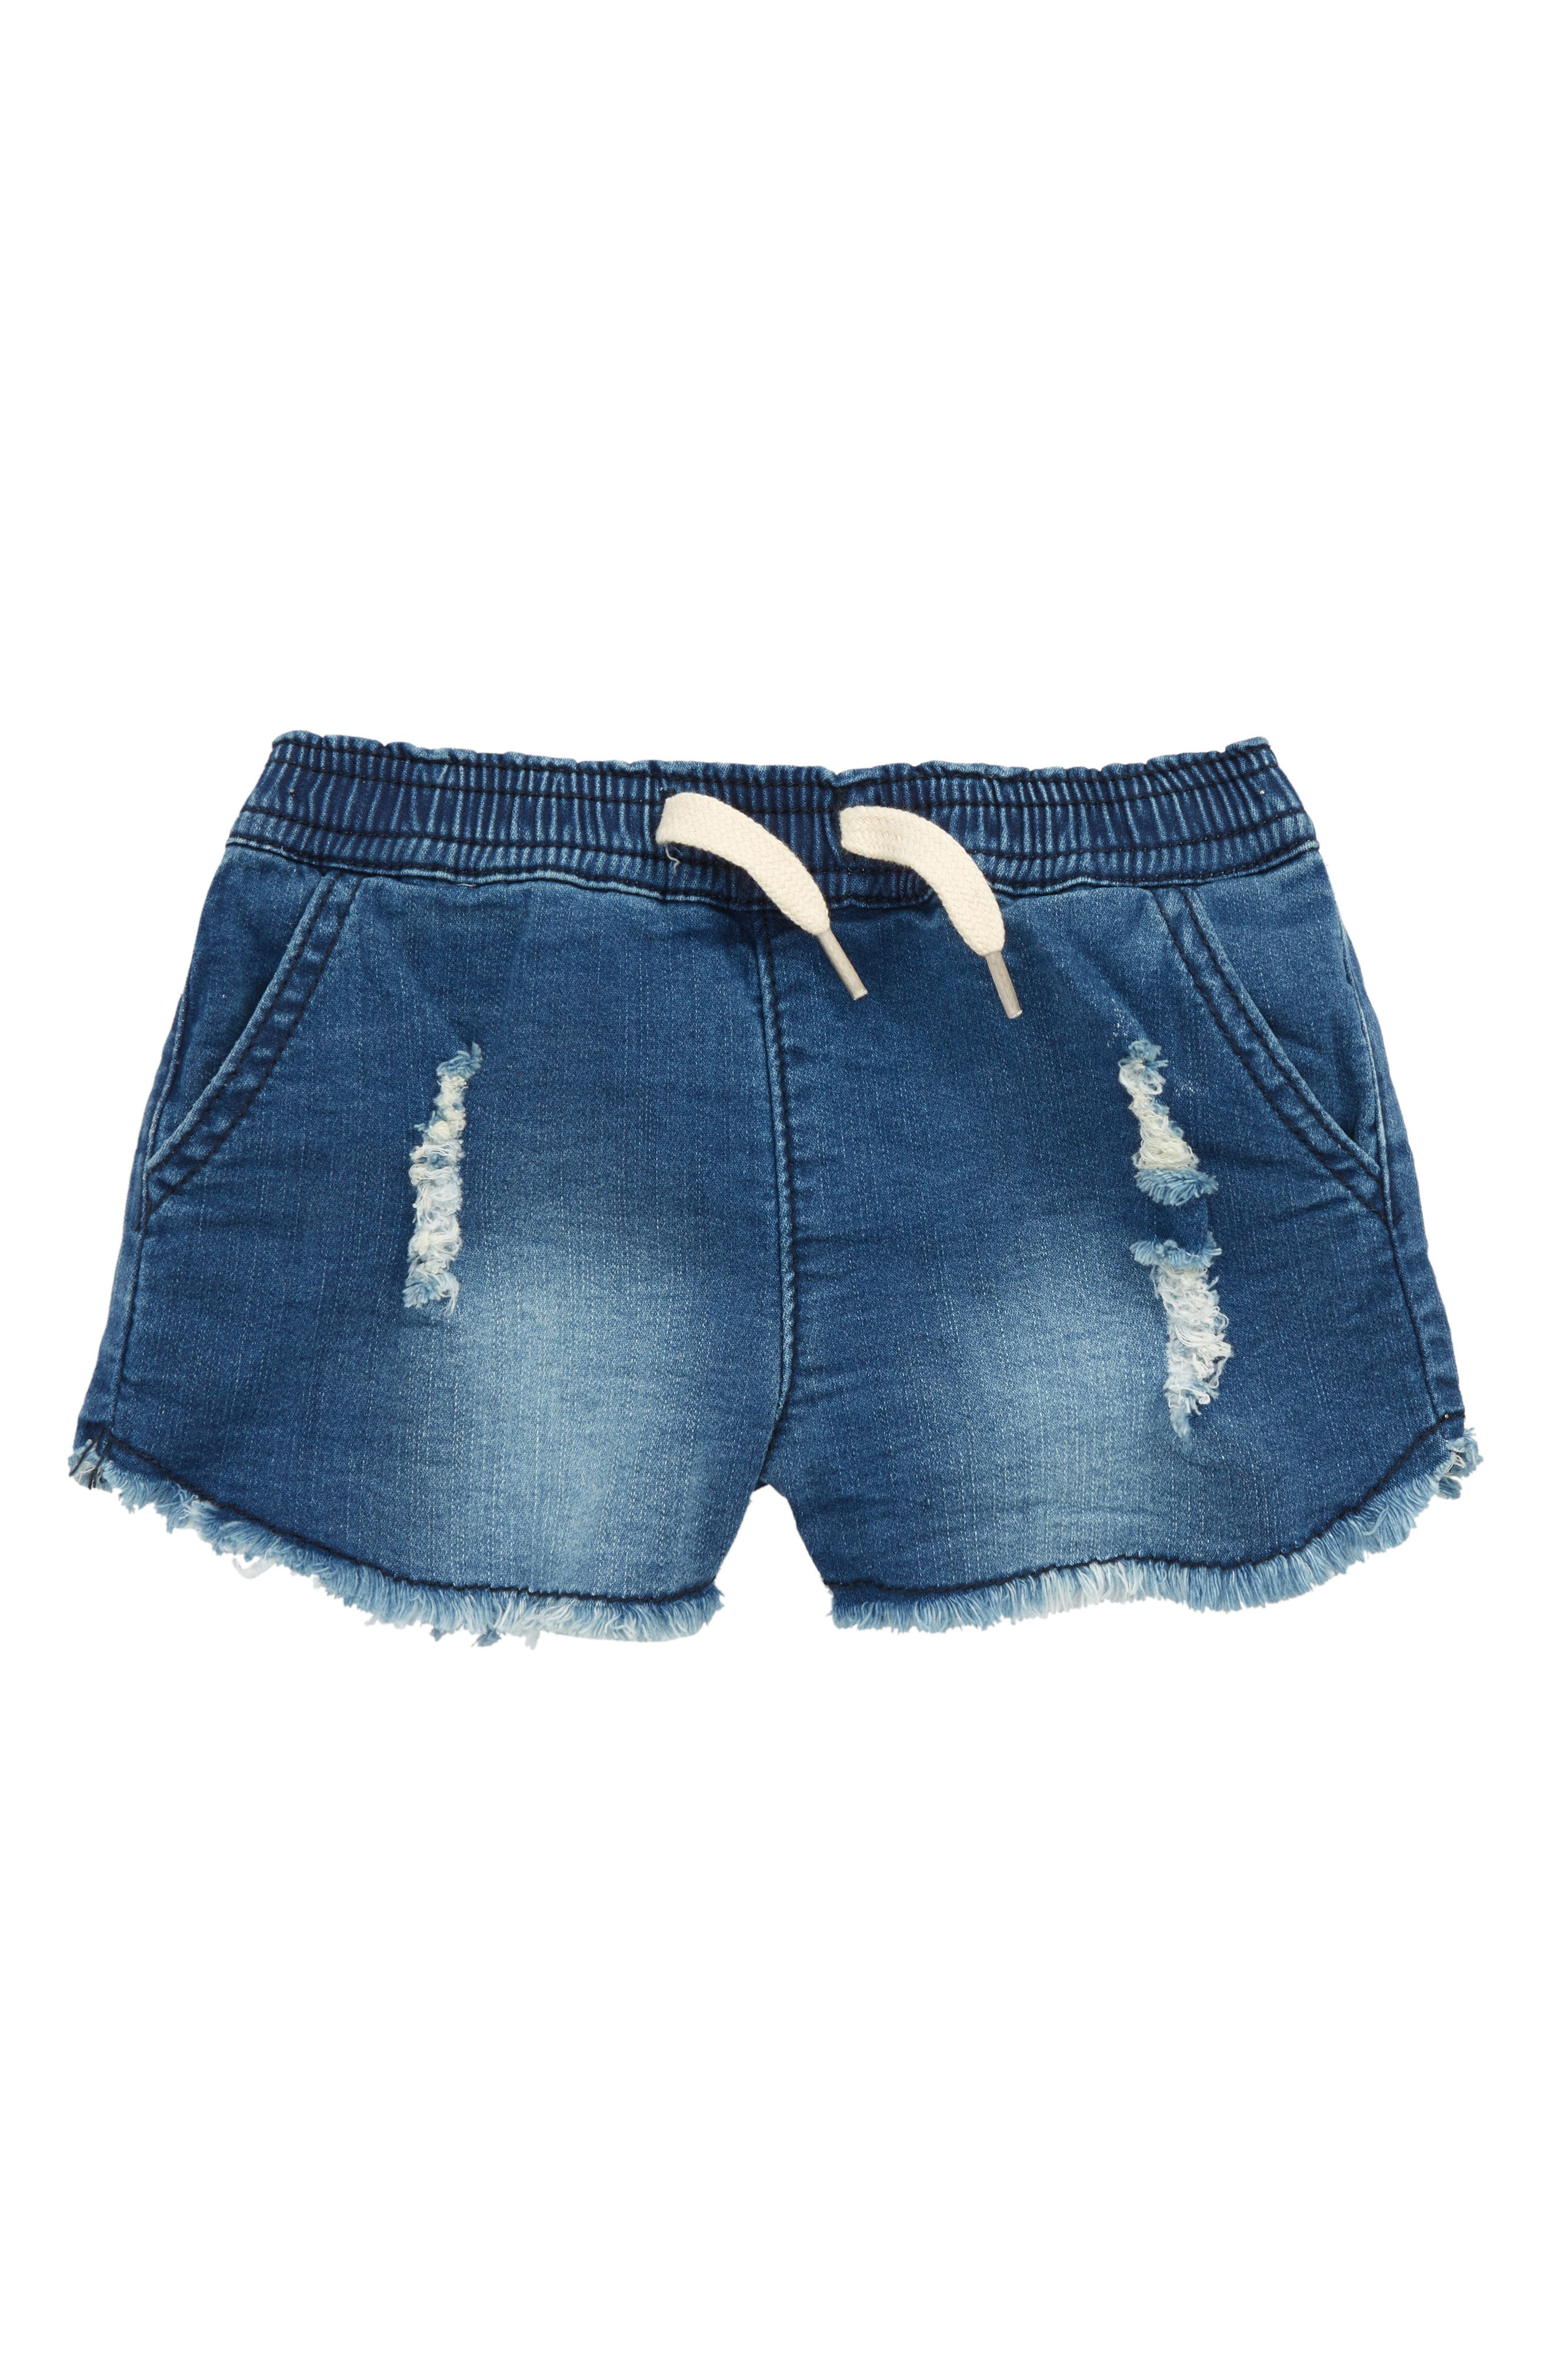 Alternate Image 1 Selected - Hudson Kids Katie French Terry Shorts (Baby Girls)